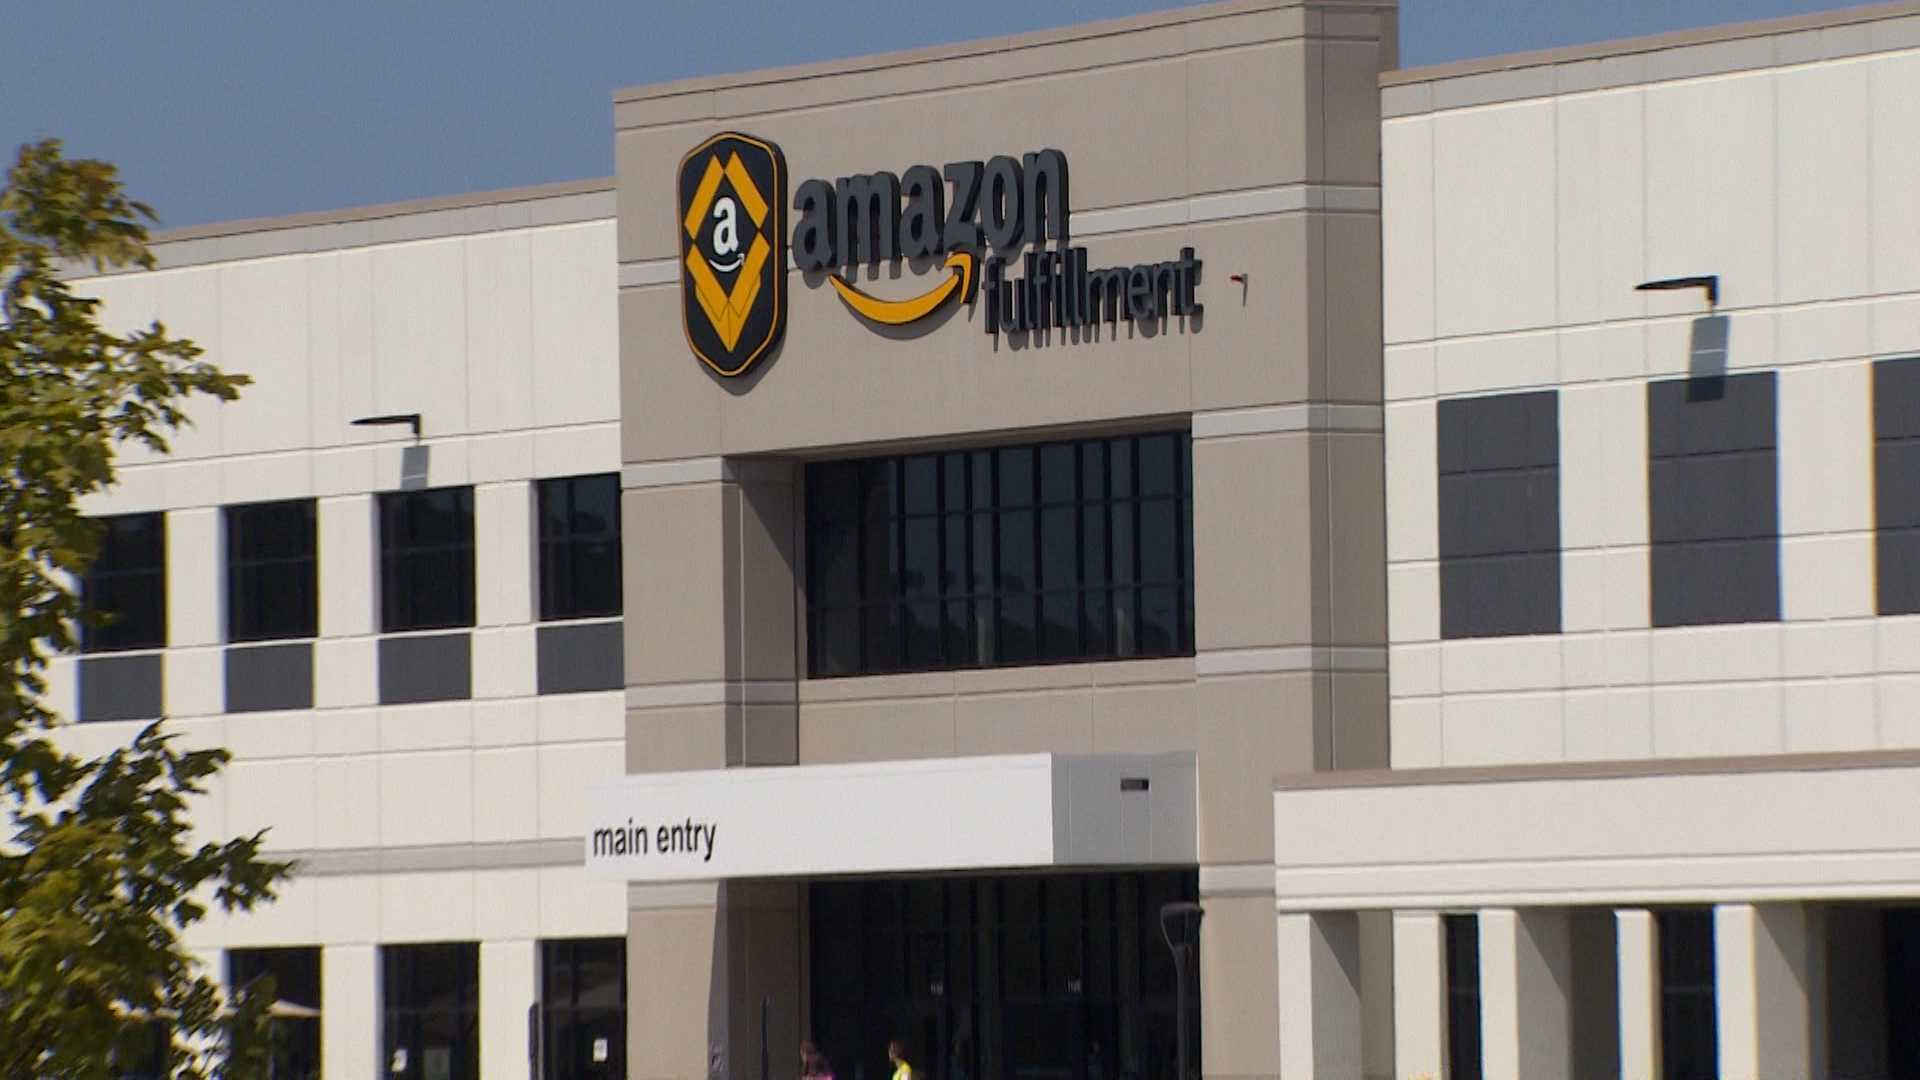 Guelph supports Toronto's bid to host Amazon's HQ2